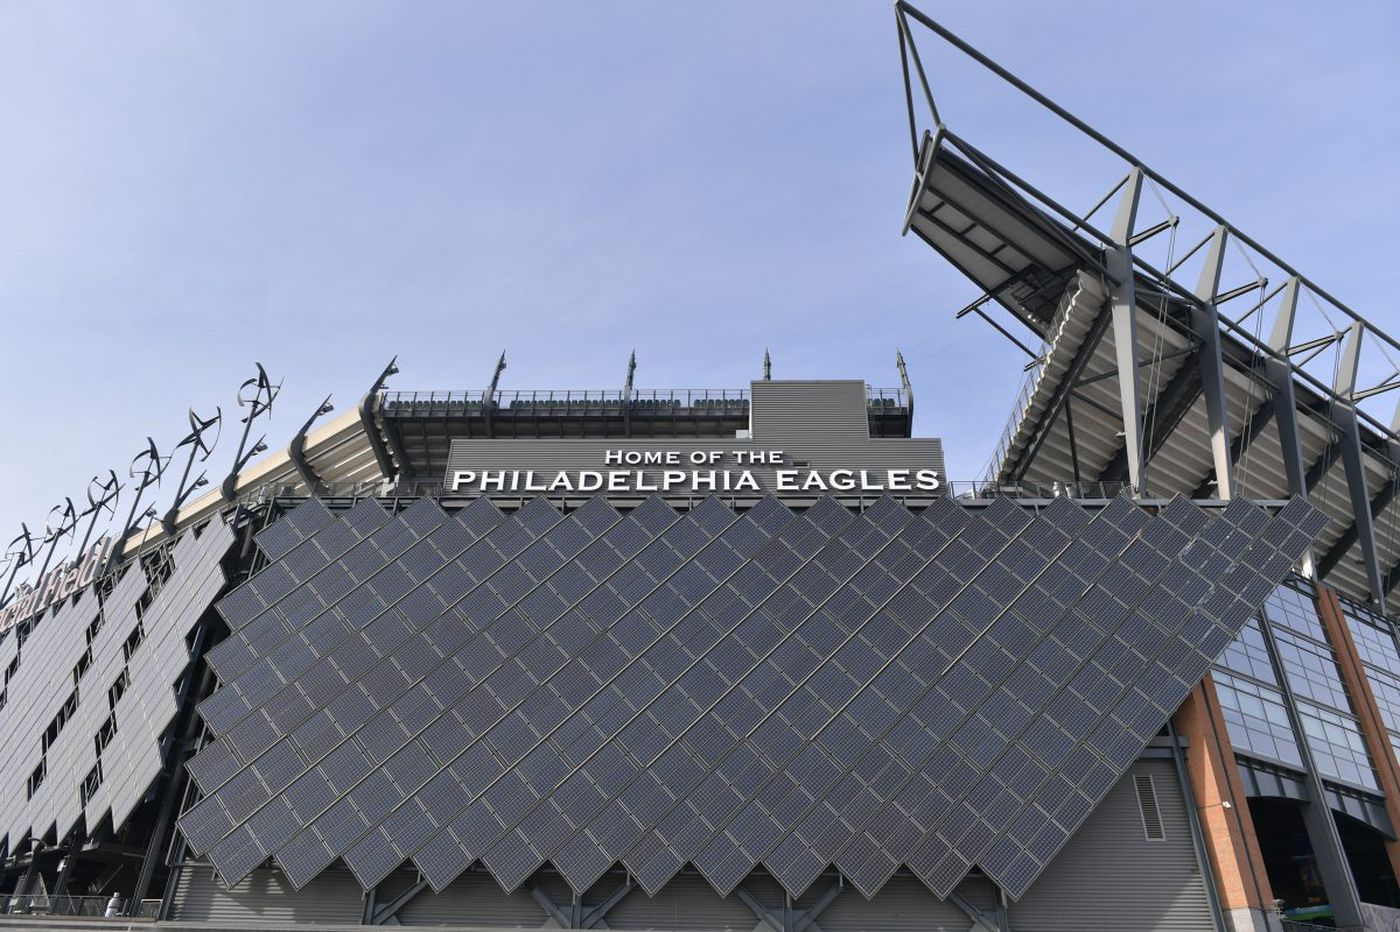 Green smackdown: Lincoln Financial Field vs. U.S. Bank Stadium